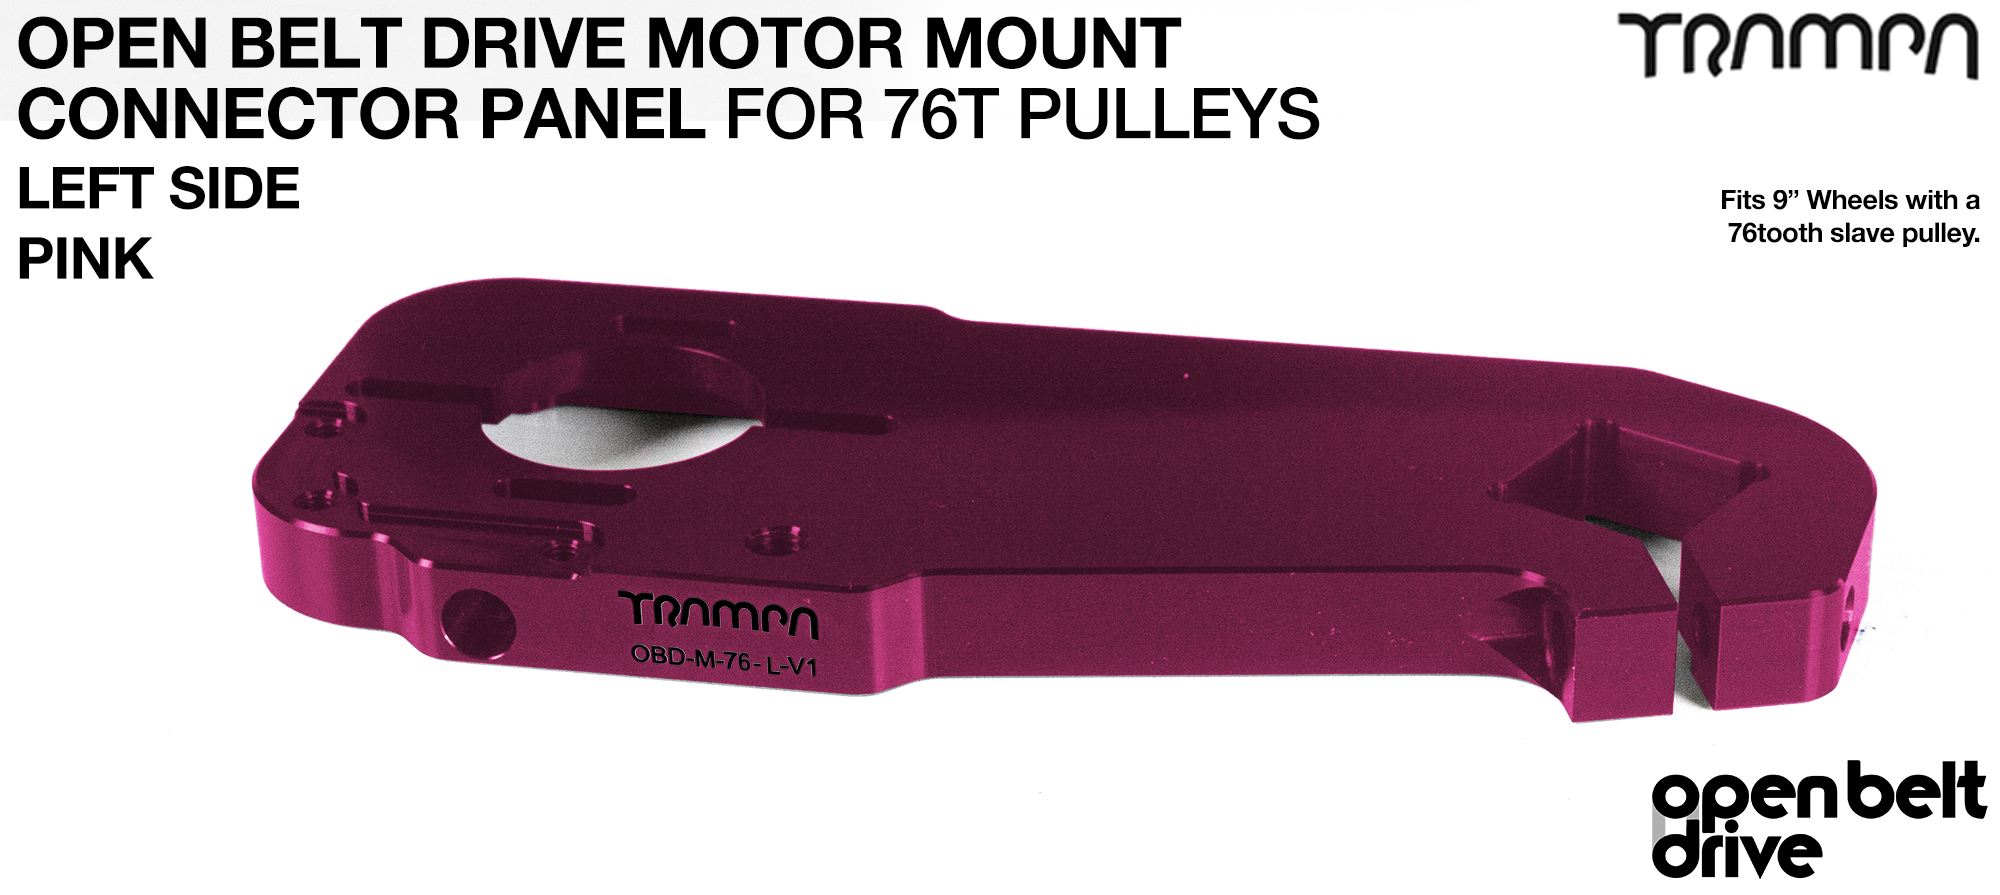 PINK 76T TWIN OBD Motor Mount Connector Panels